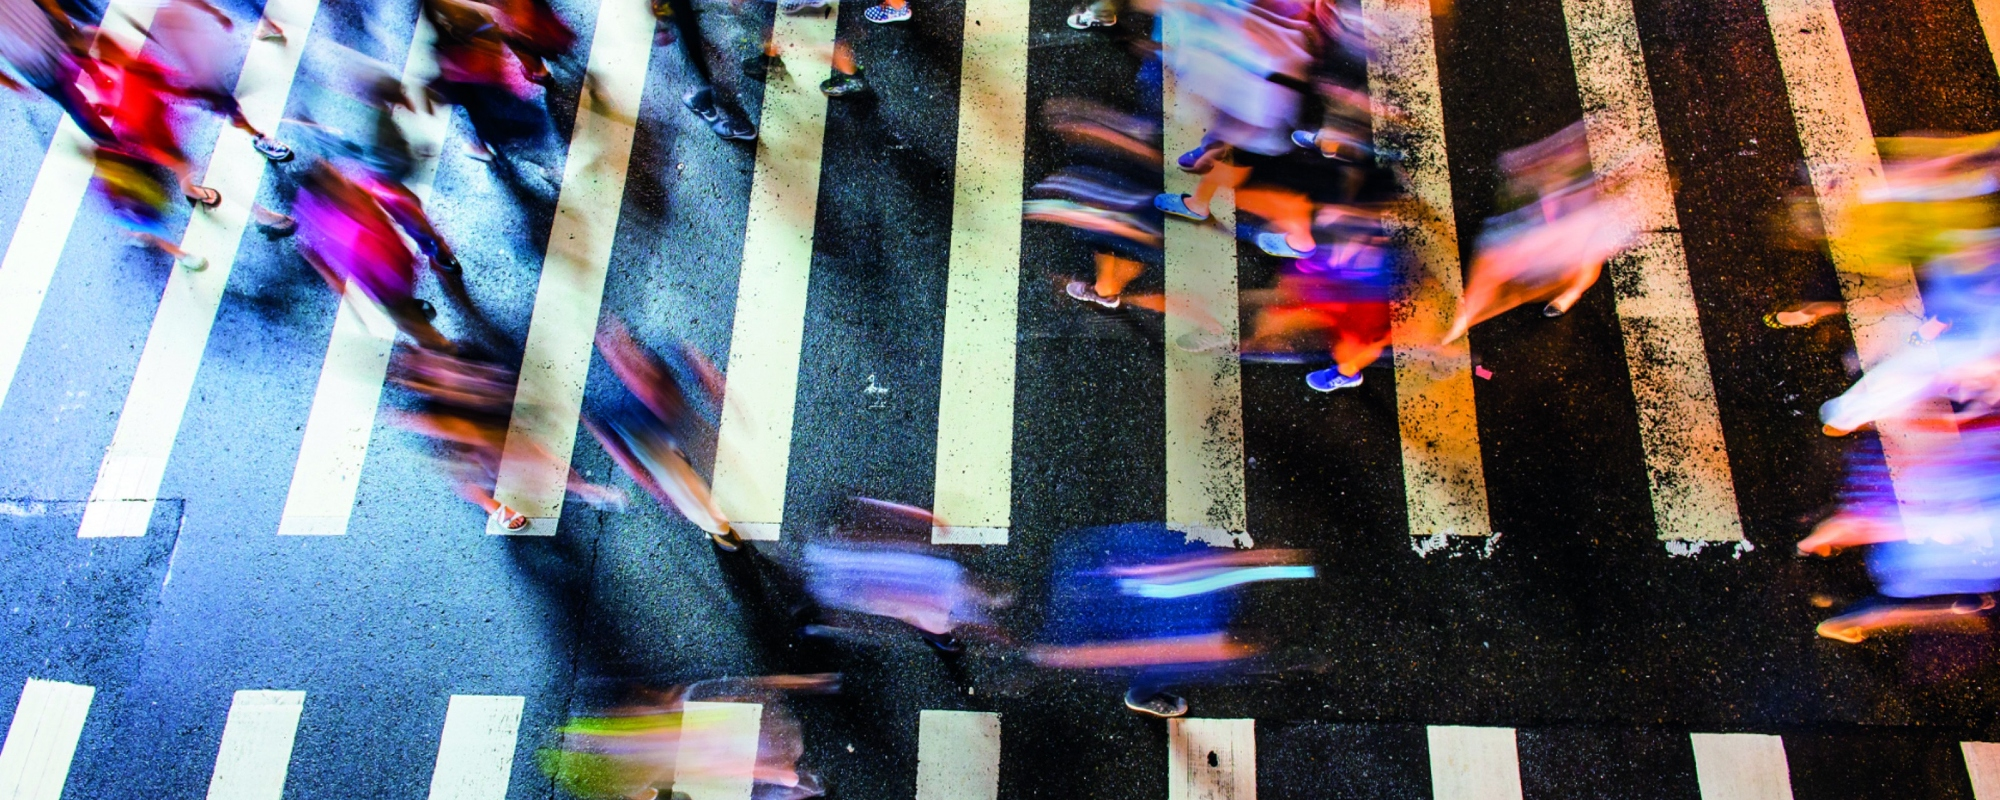 Birds eye view of several blurred people crossing both ways on a zebra crossing.